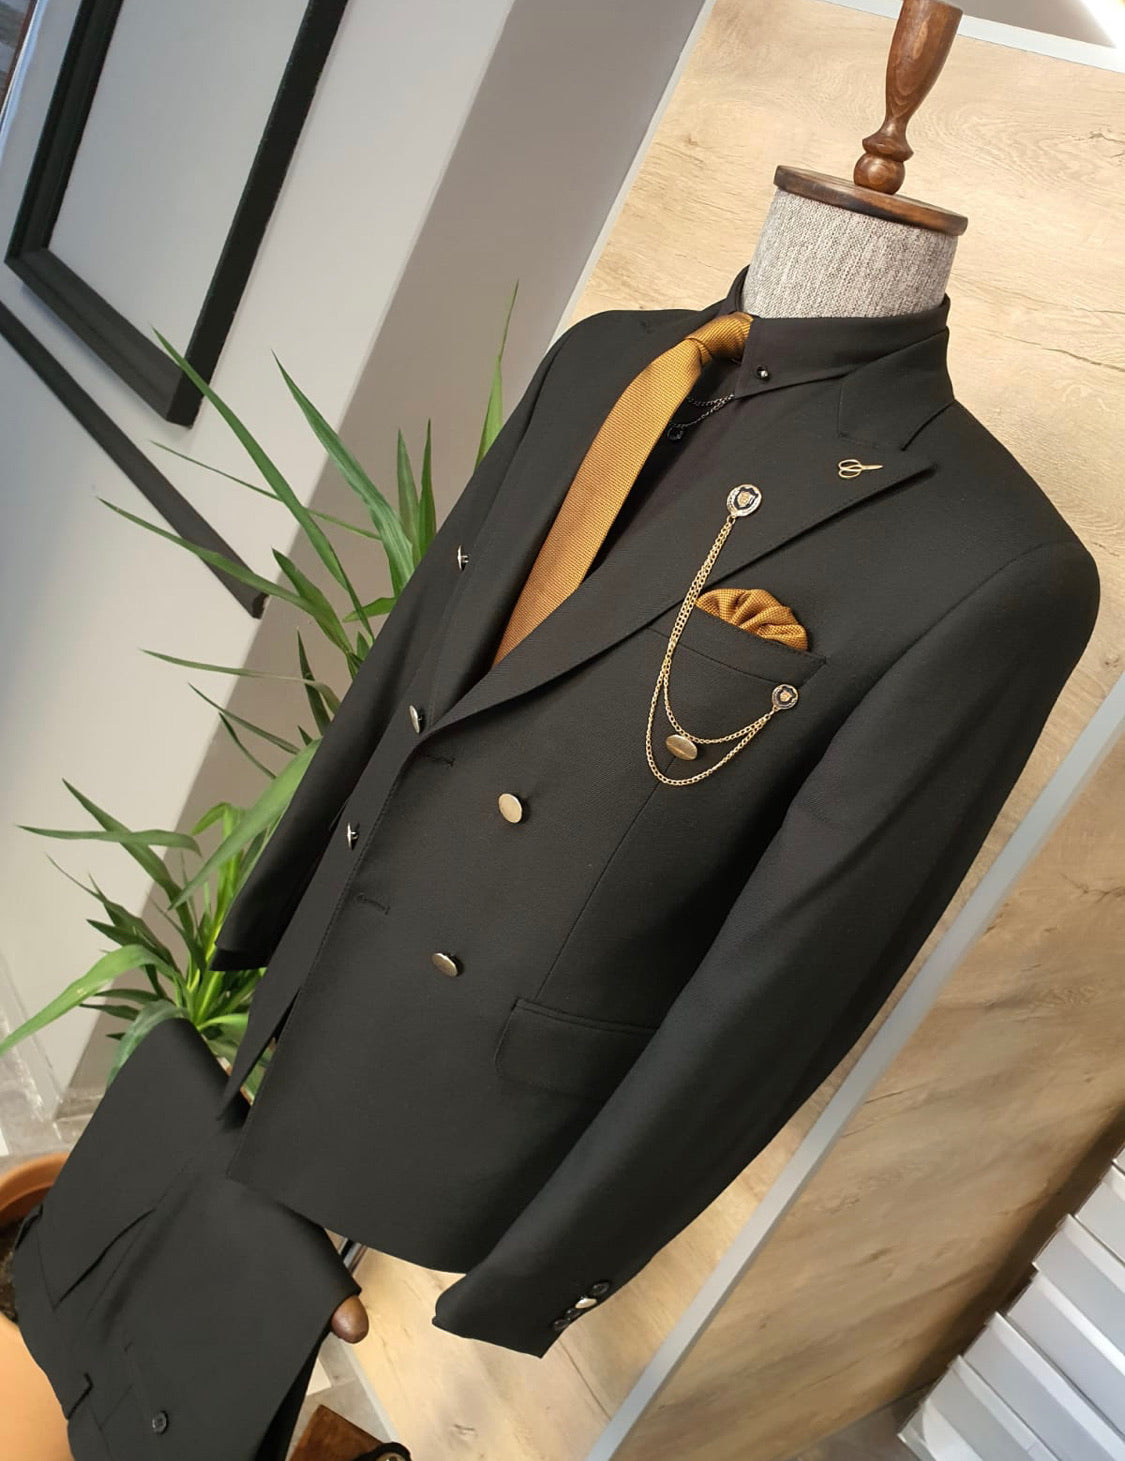 Garuzo Black Slim Fit Double Breasted Suit